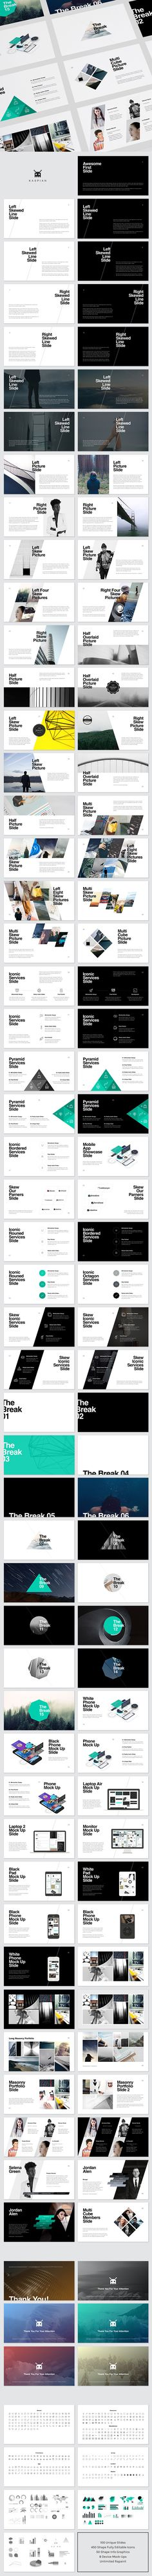 Both dark and - Keynote - Ideas of Keynote - Awesome modern geometric slide deck presentation layout templates. Both dark and light color schemes. Presentation Deck, Powerpoint Presentation Templates, Keynote Template, Creative Powerpoint, Powerpoint Designs, Professional Powerpoint, Design Poster, Book Design, Layout Design